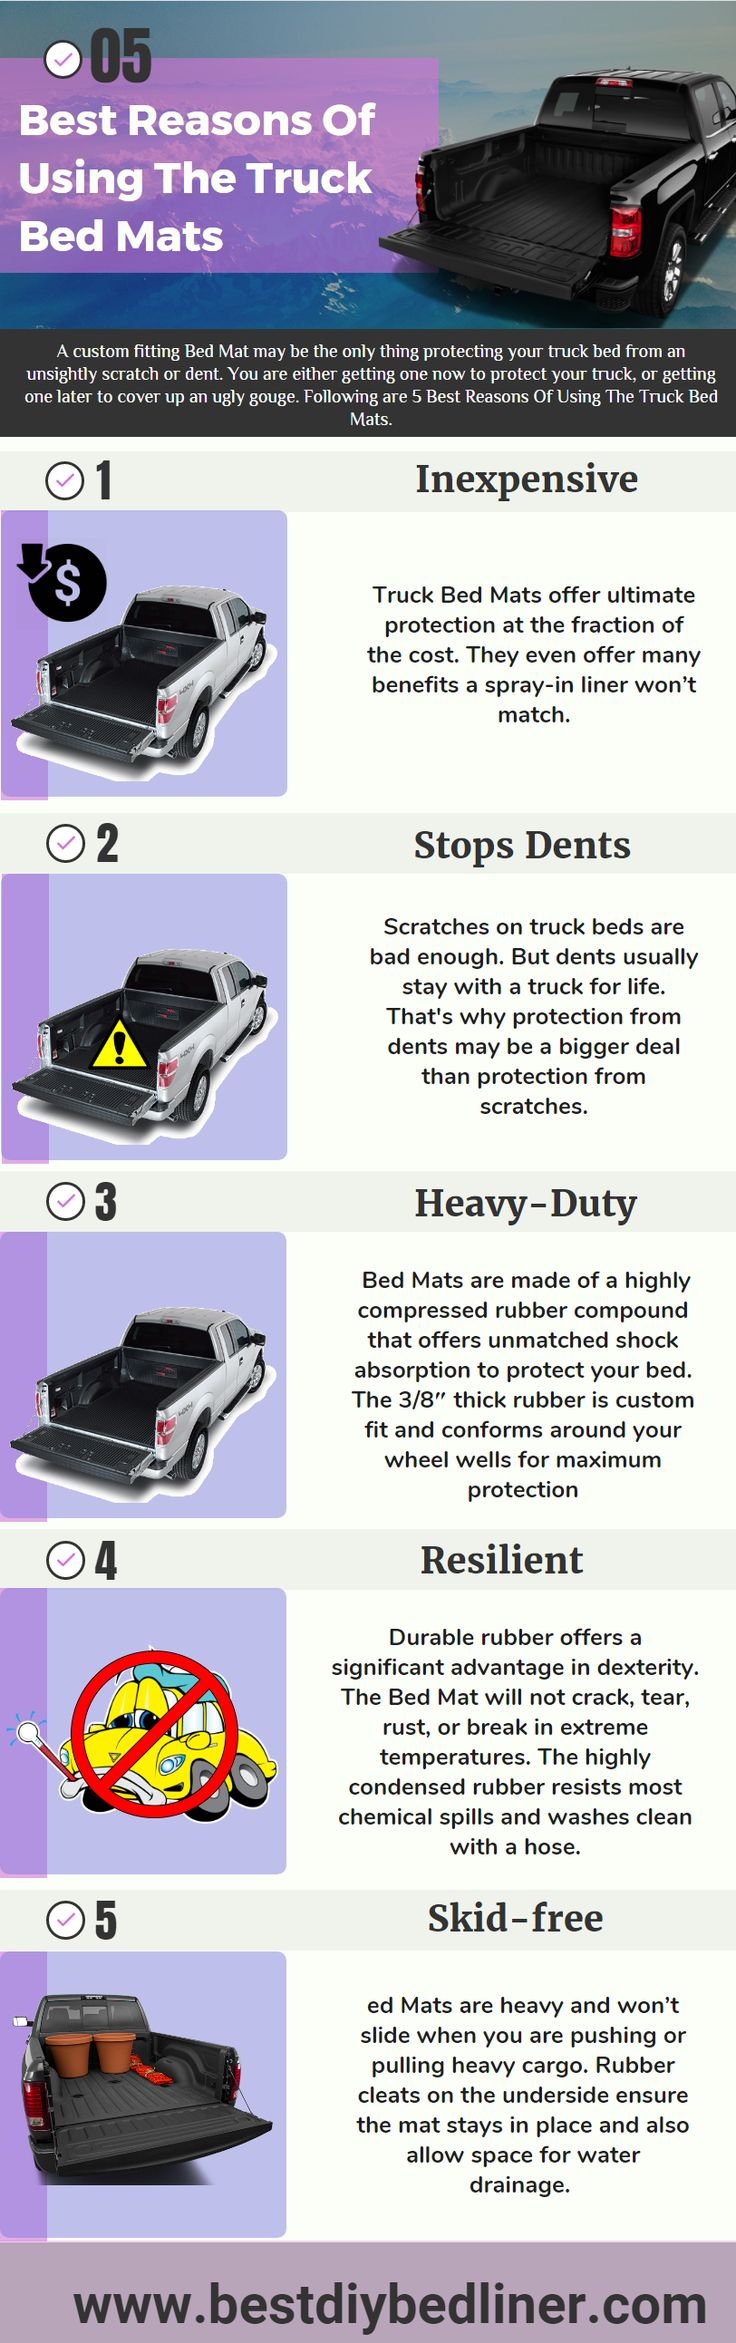 Rubber mats for trucks -  Truck Bedmats Is The Best Option To Protect Your Truck From Dent Scratches